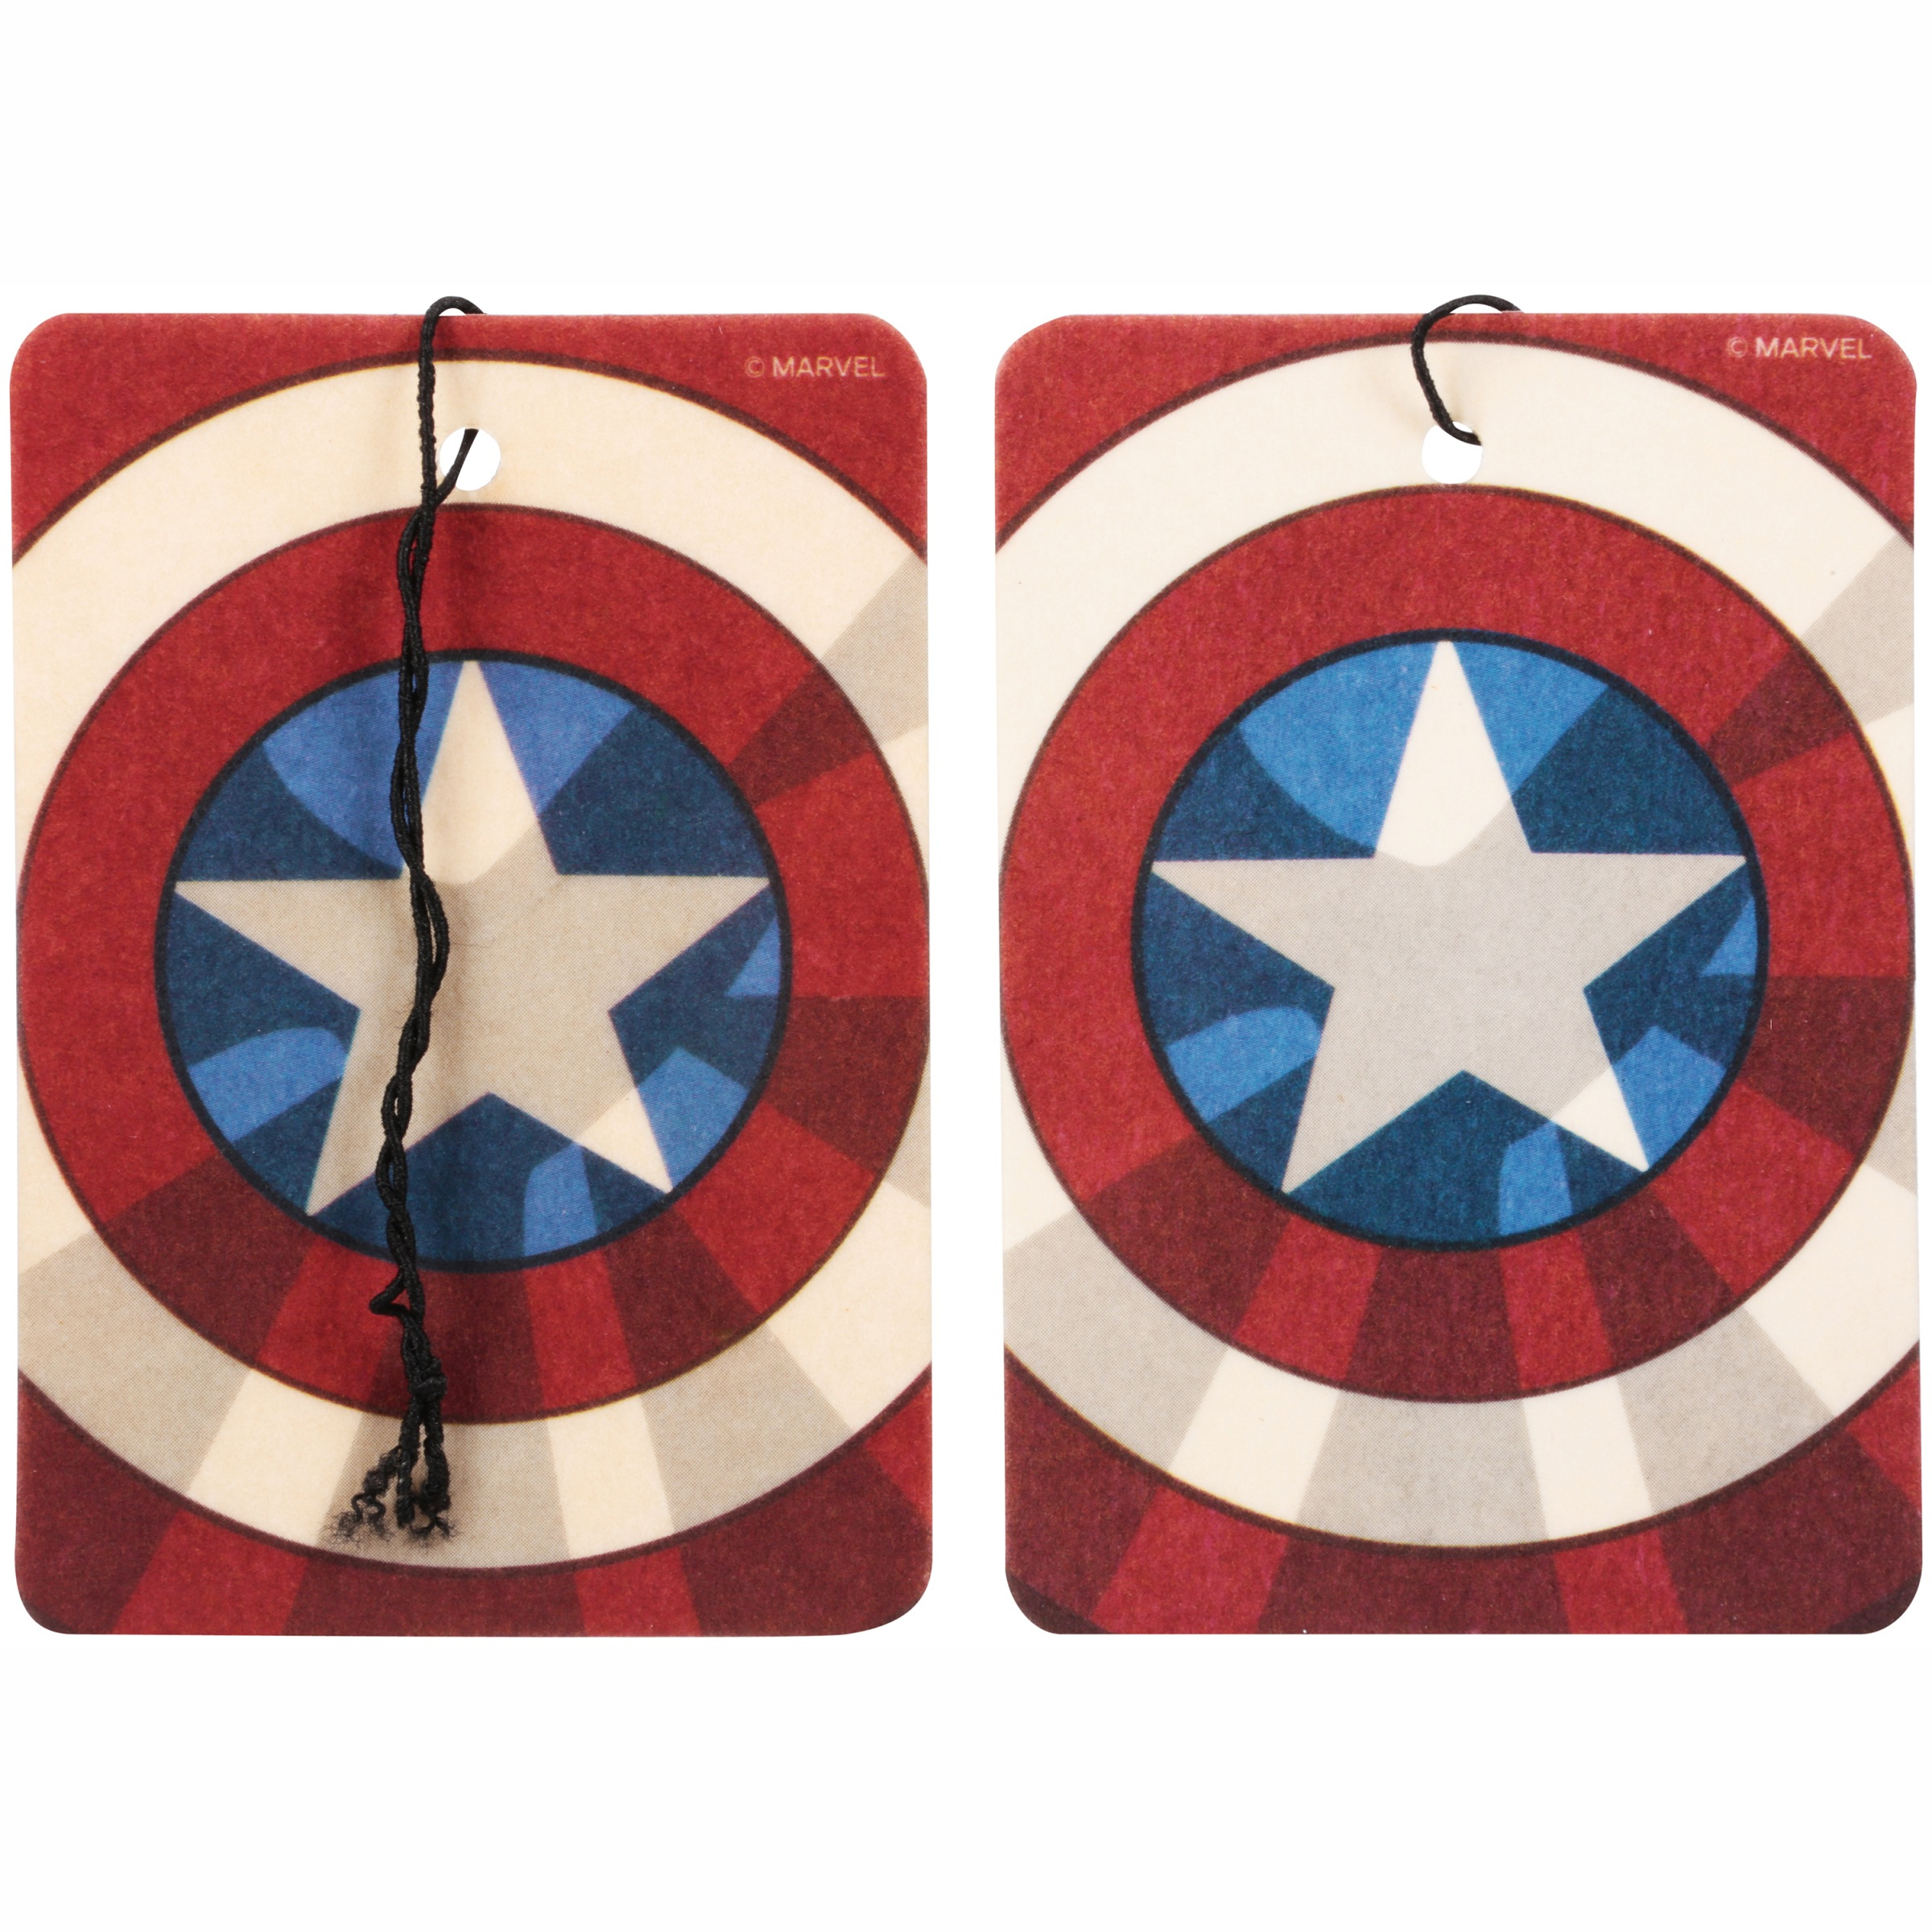 (2 pack) Marvel Avengers Assemble™ Captain America Vanilla Air Freshener 2 ct Pack